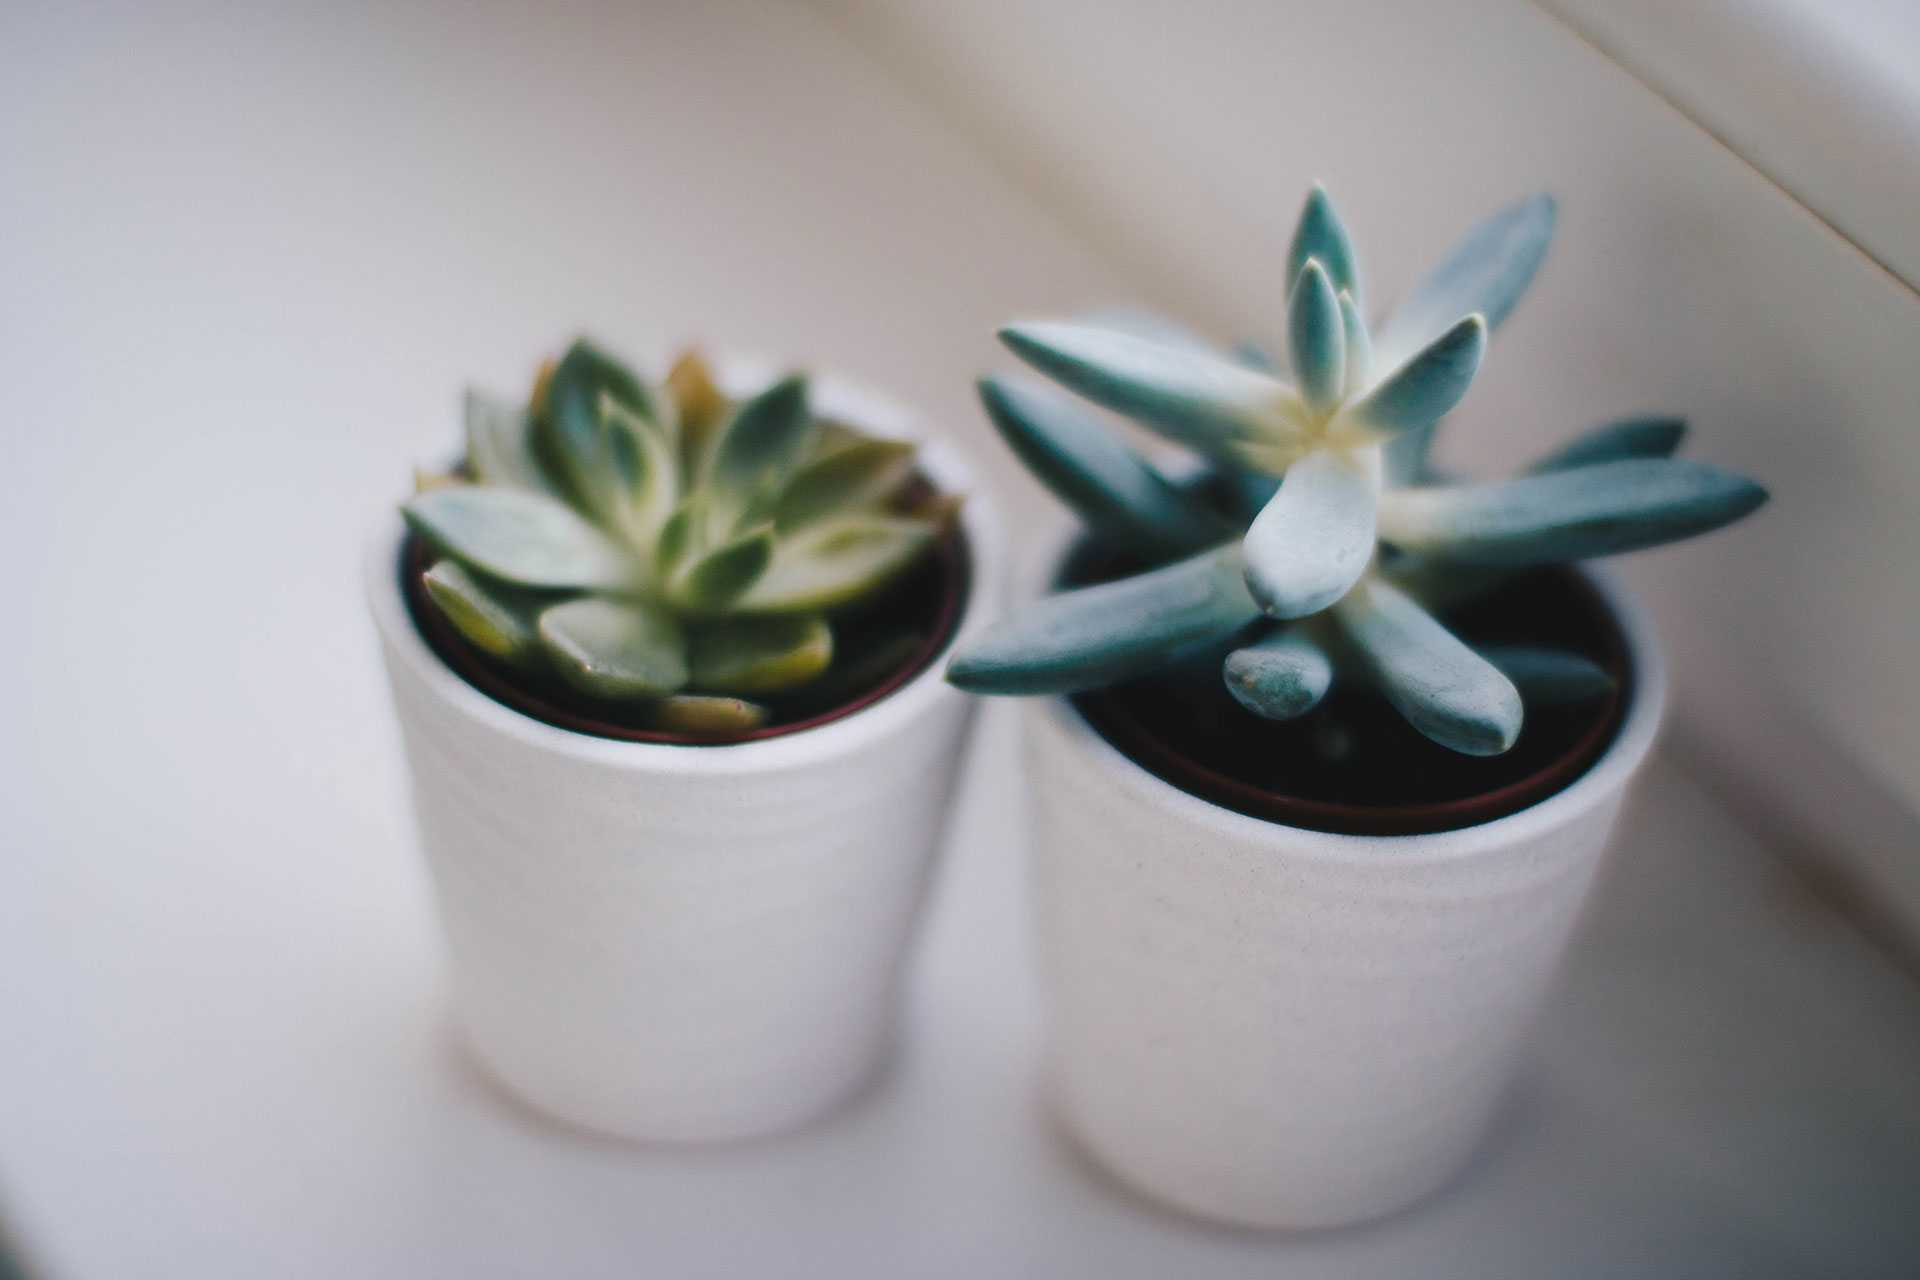 Two growing succulent plants